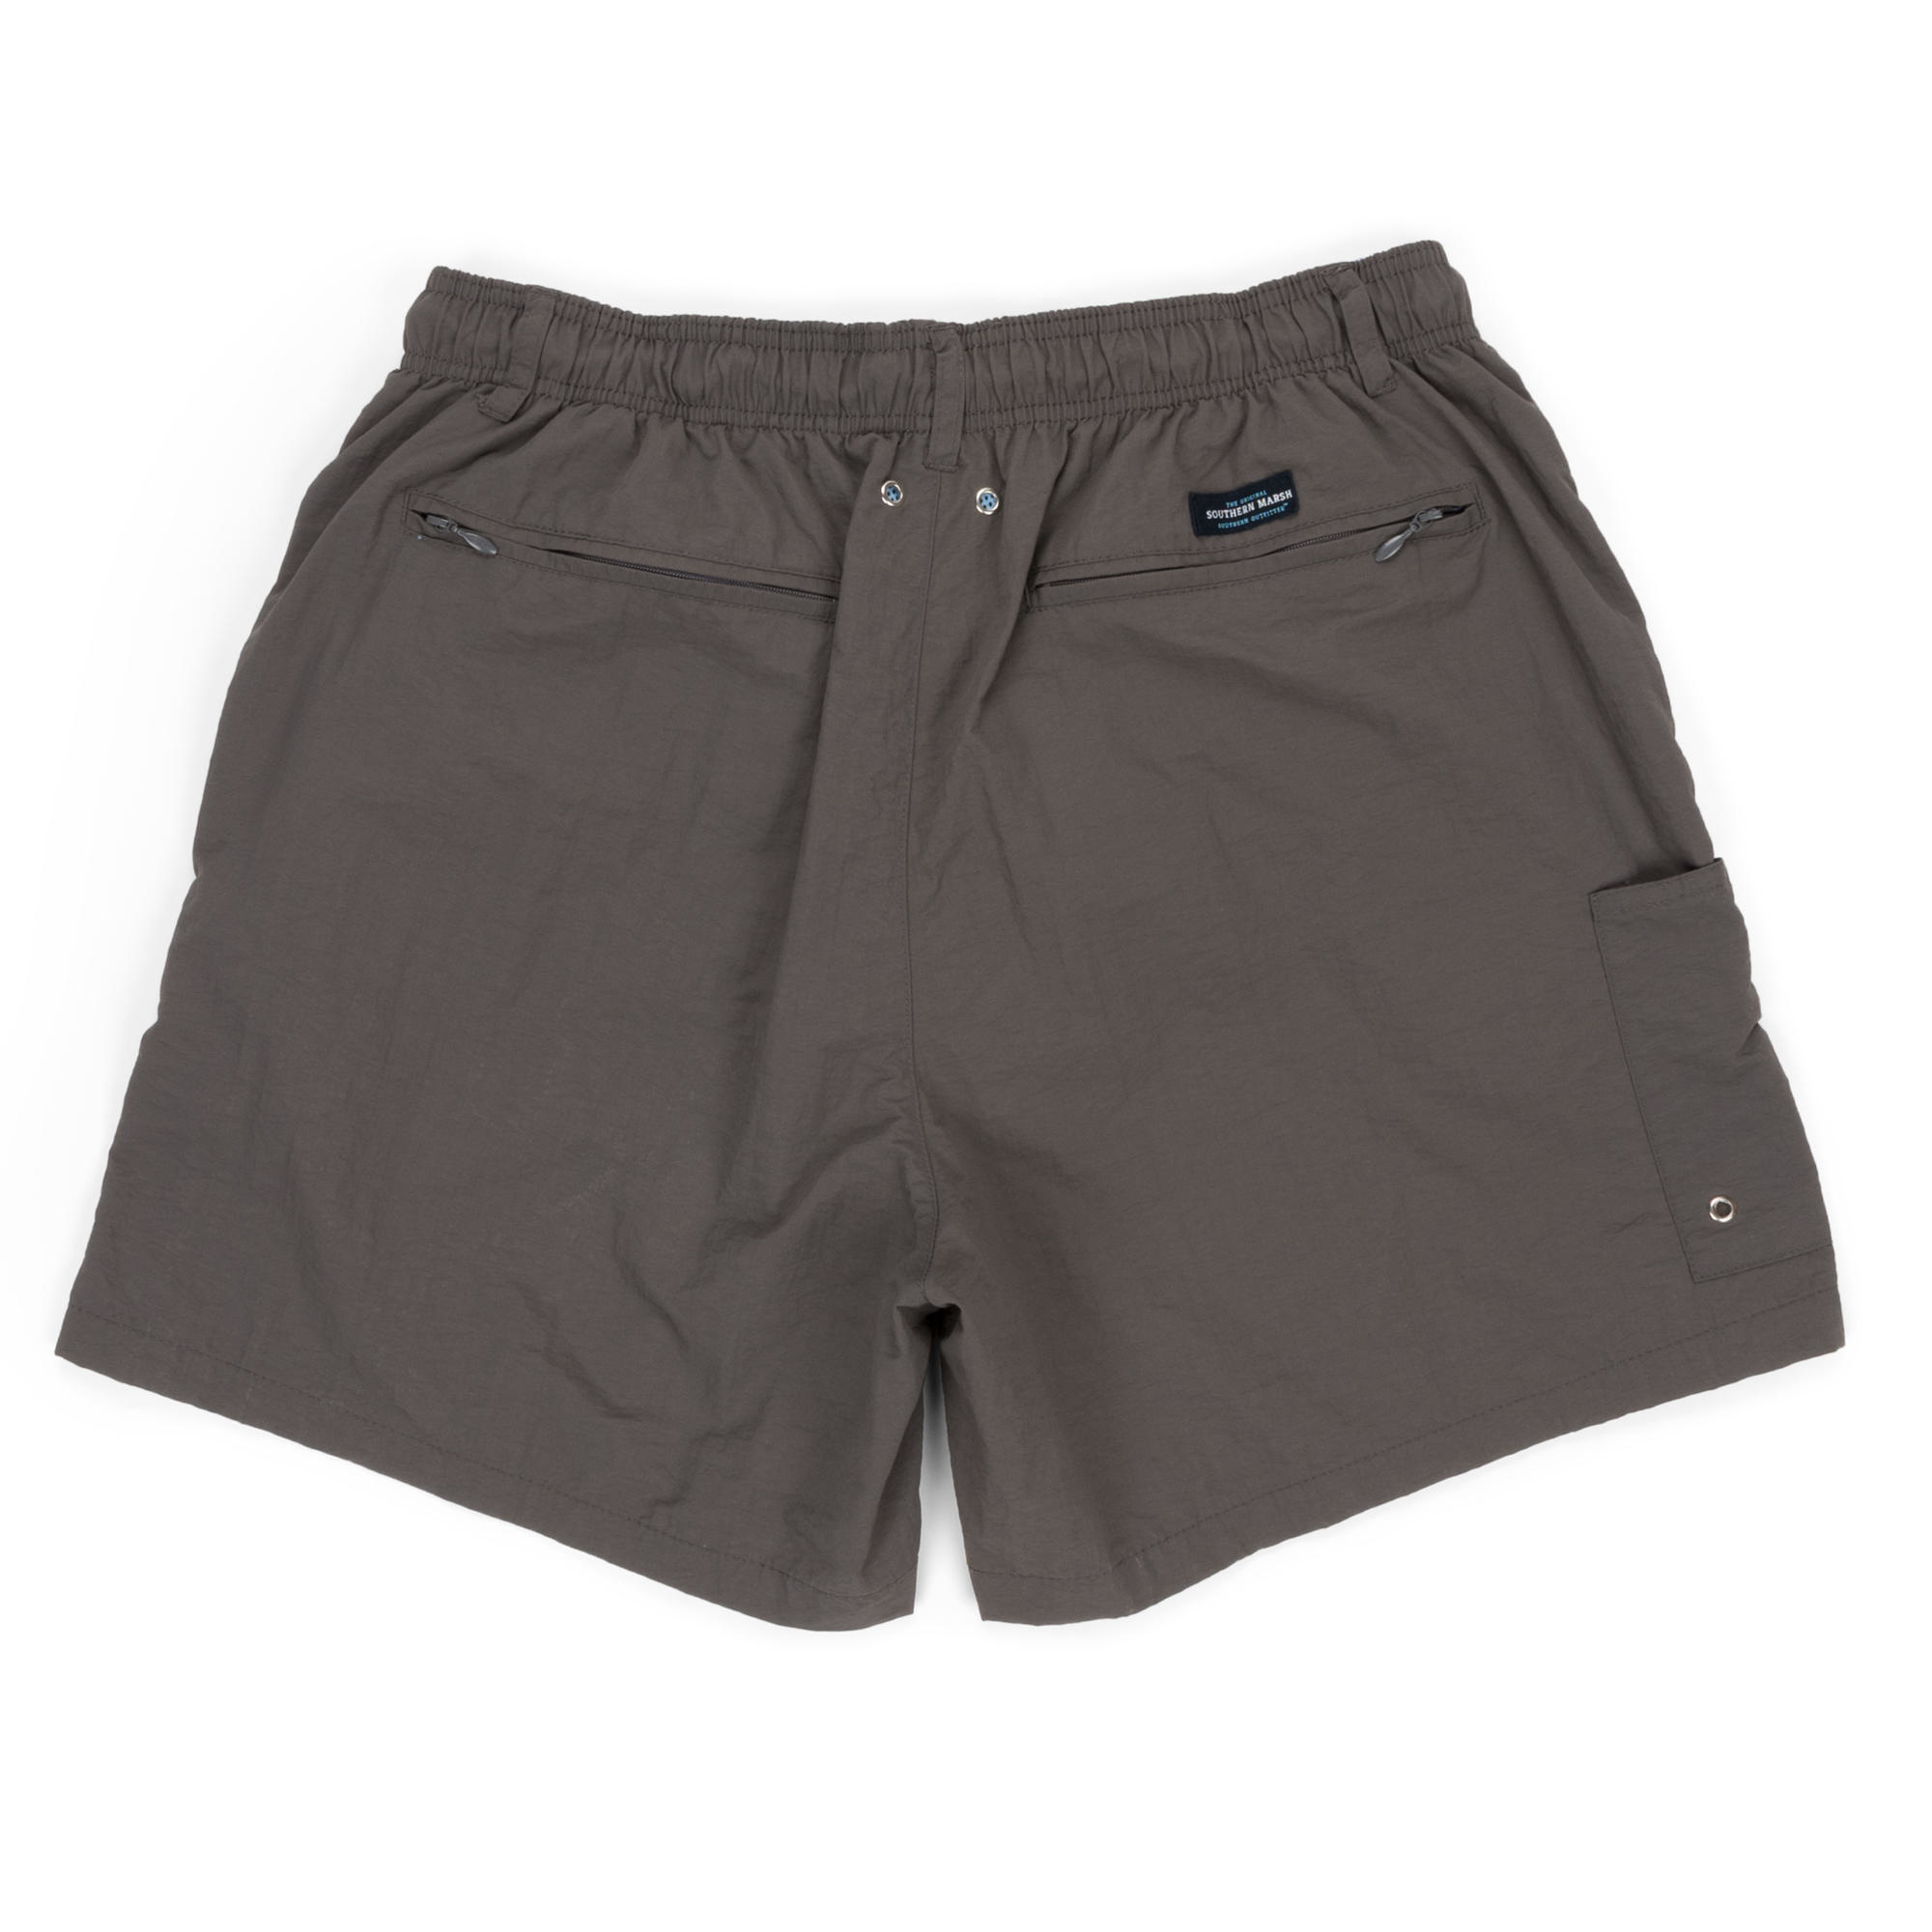 Southern Marsh Southern Marsh The Dockside Swim Trunk - Solid